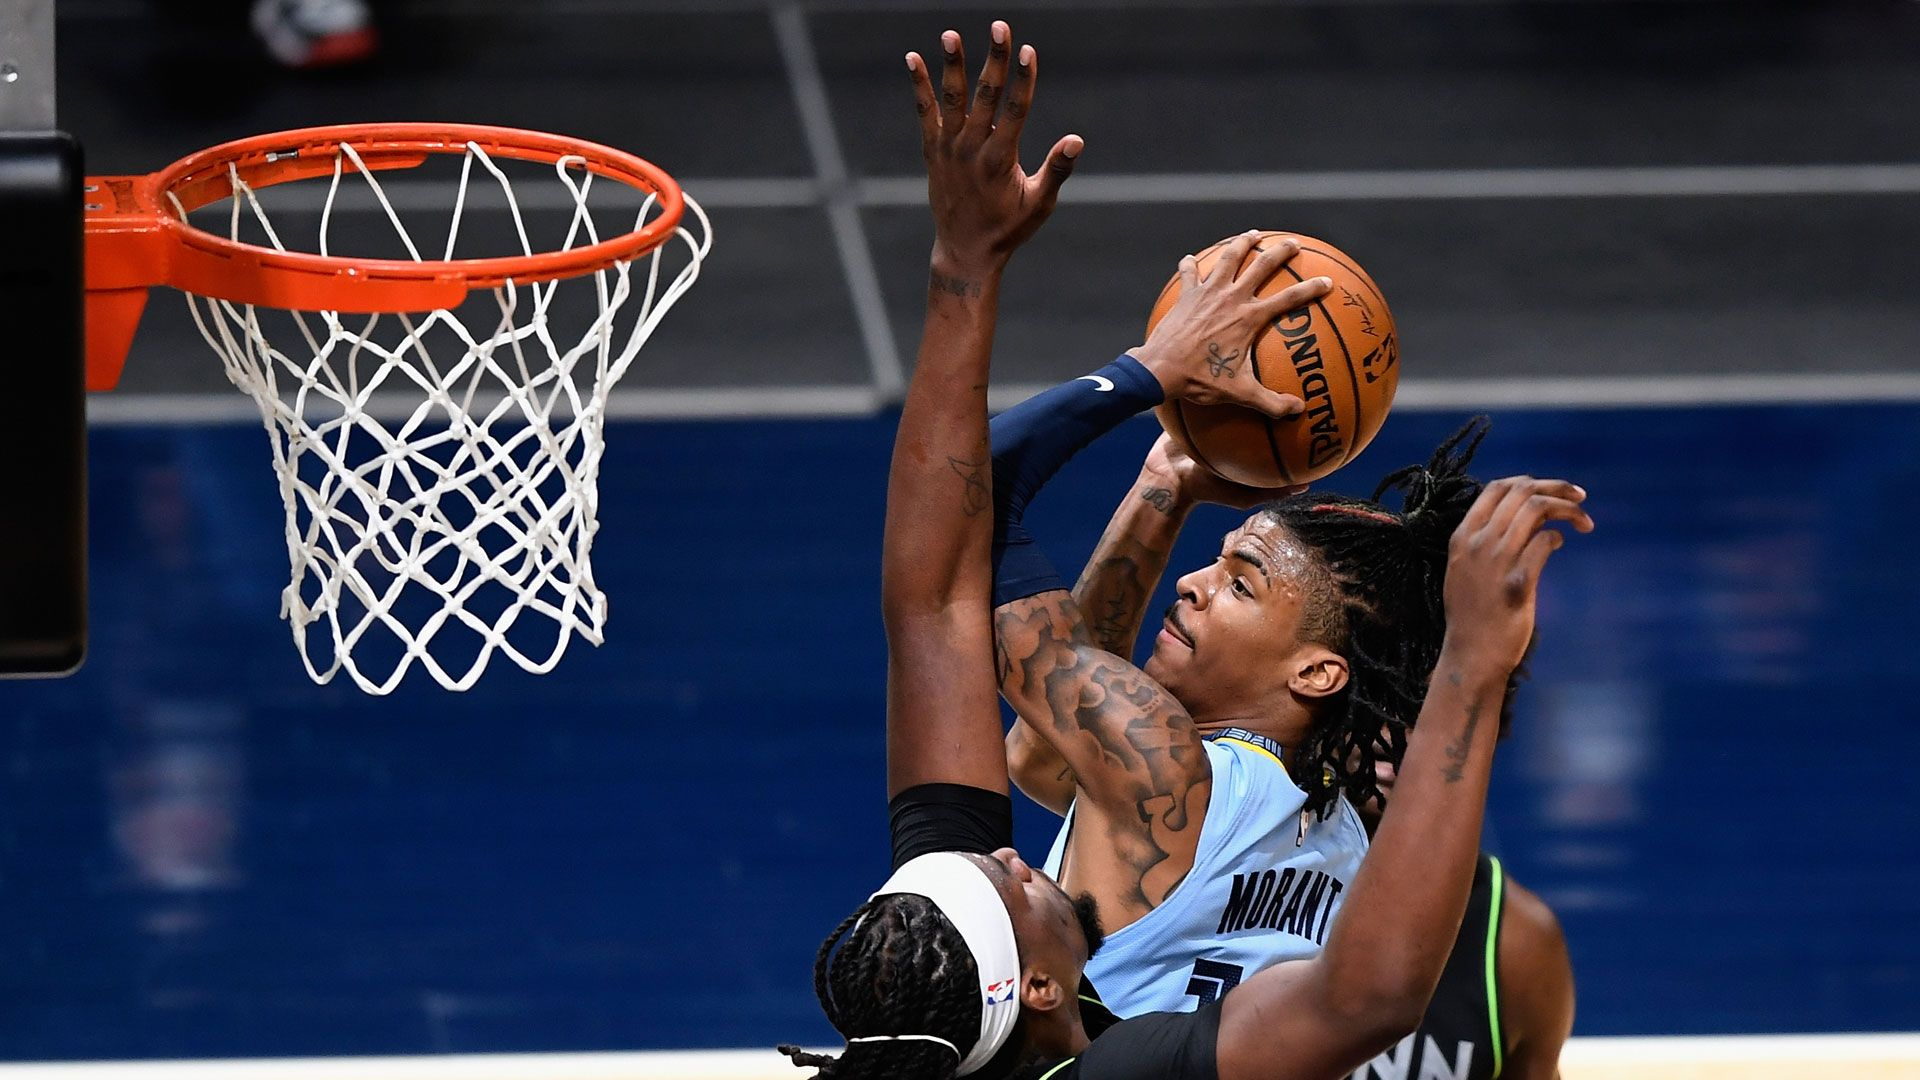 Ja Morant 37 points @ Timberwolves 5.5.21